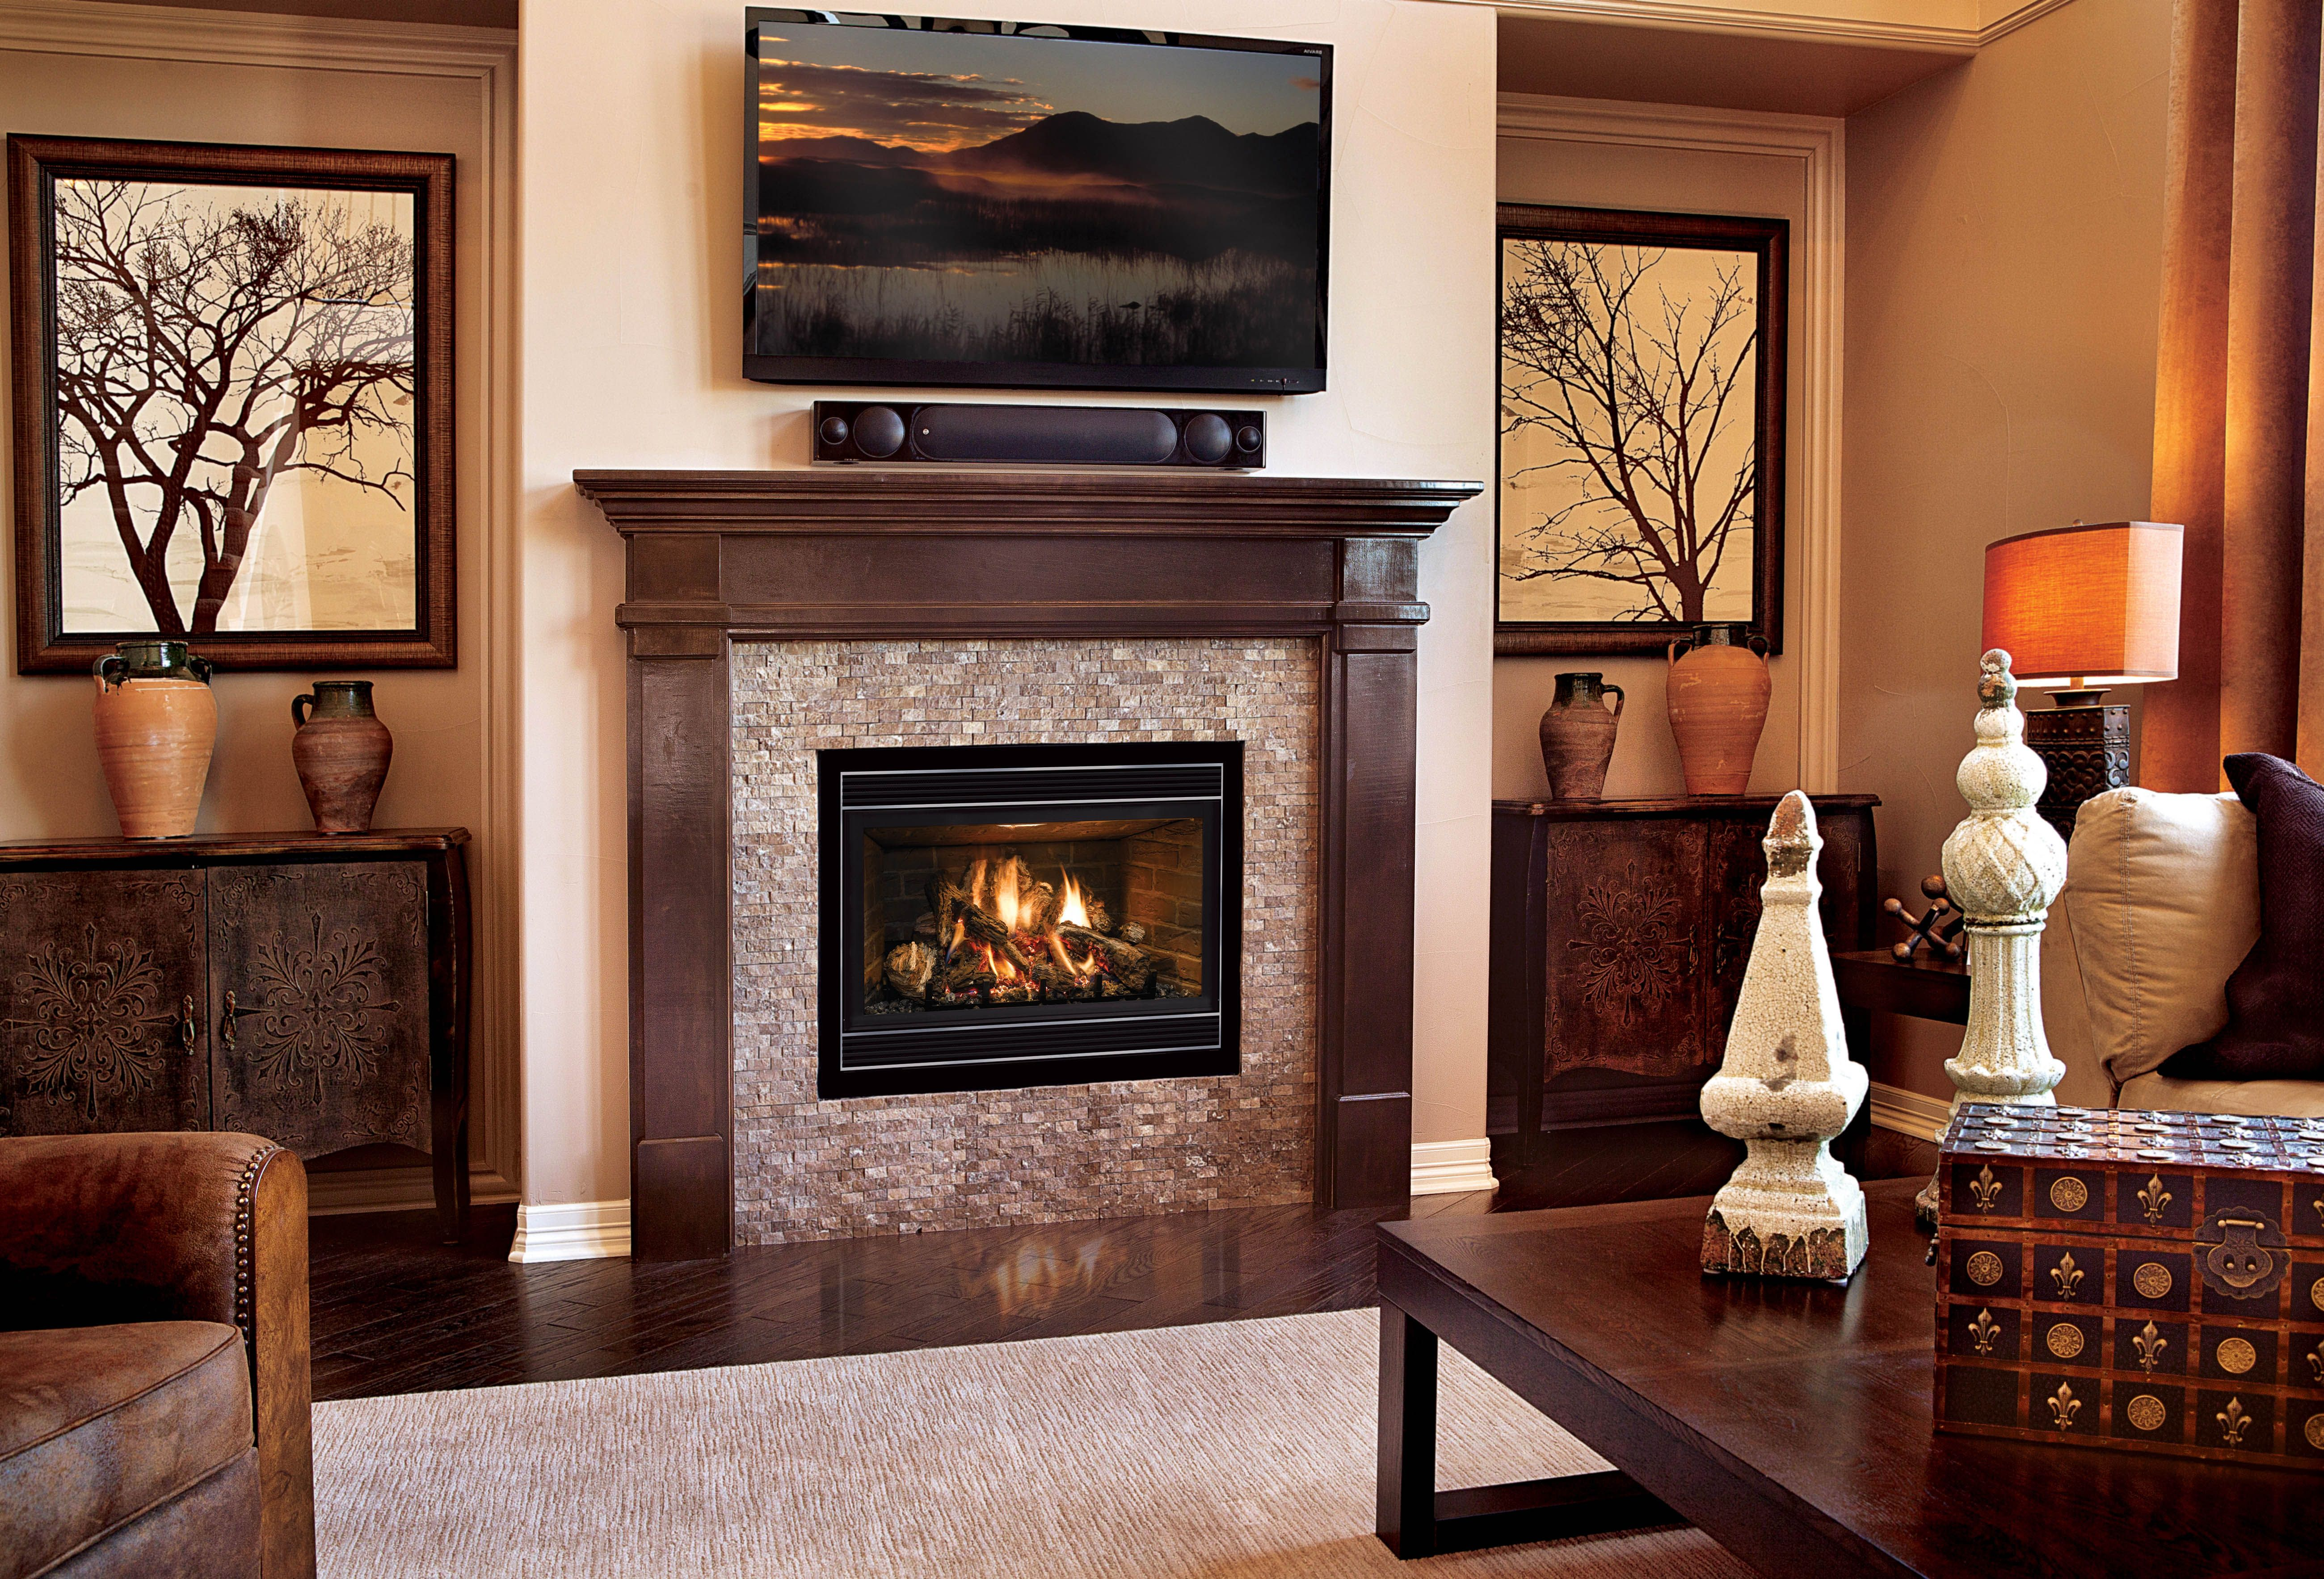 The Dxv Model Is One Of Mendota S More Traditional Gas Fireplaces